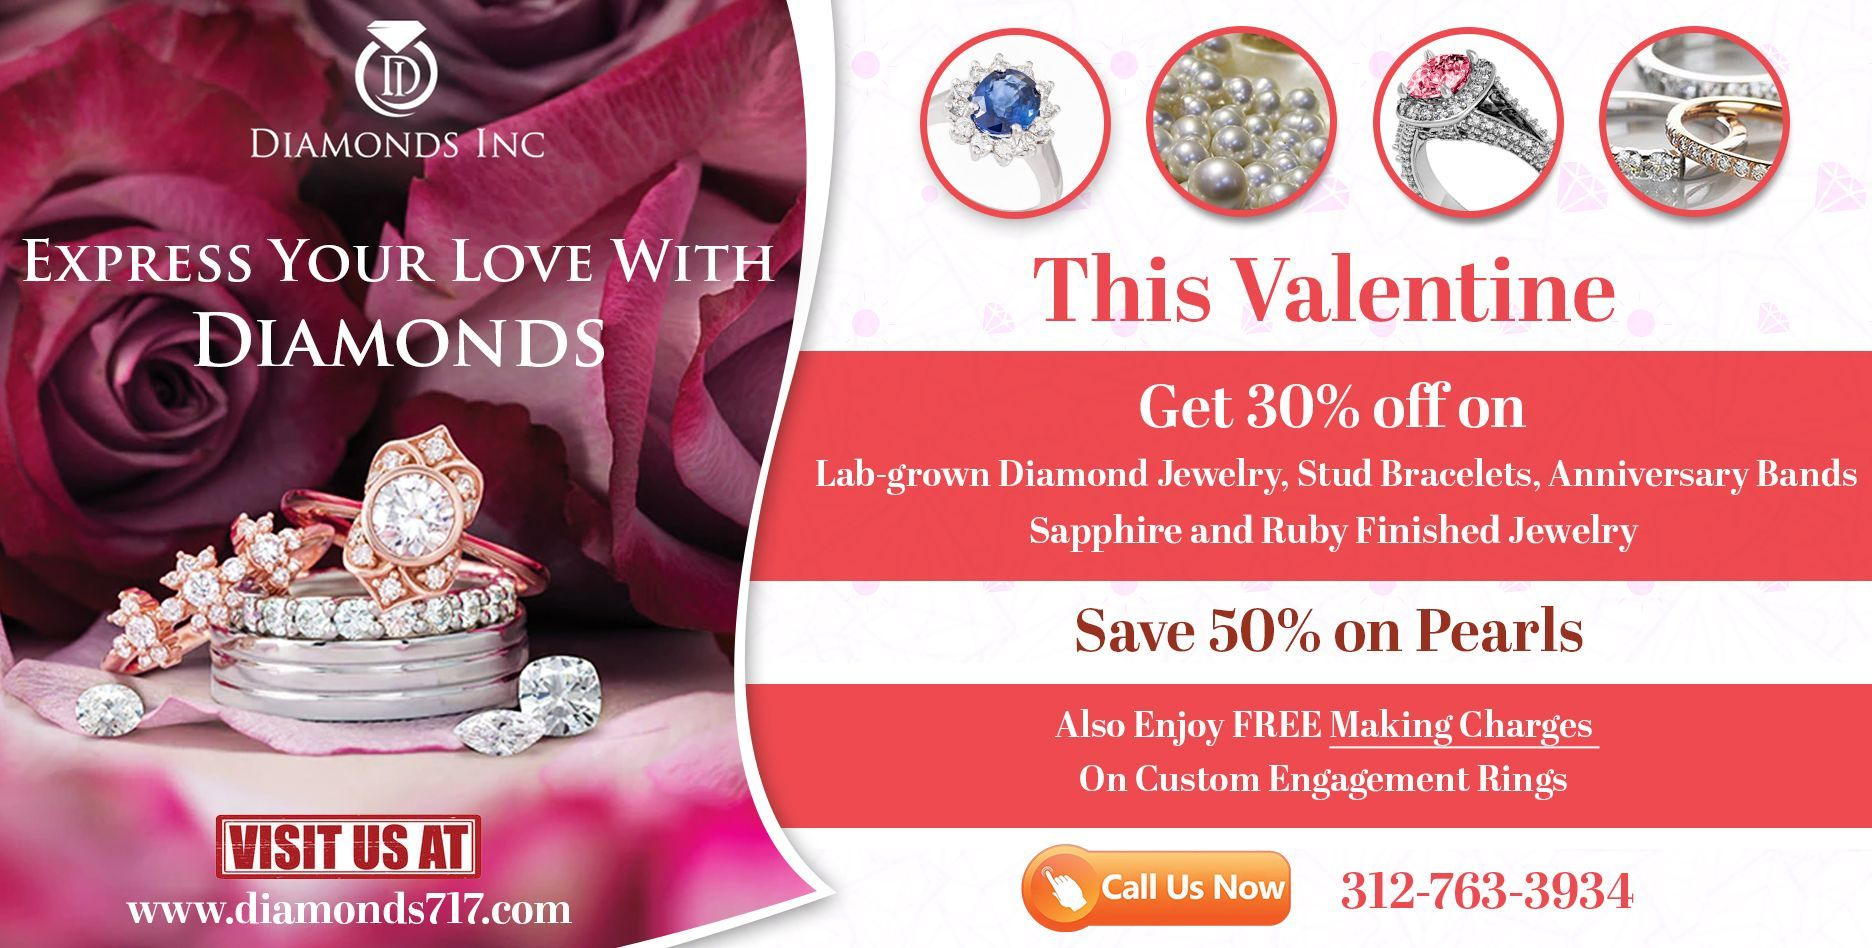 Buy Exciting Diamond Engagement Rings this Valentine